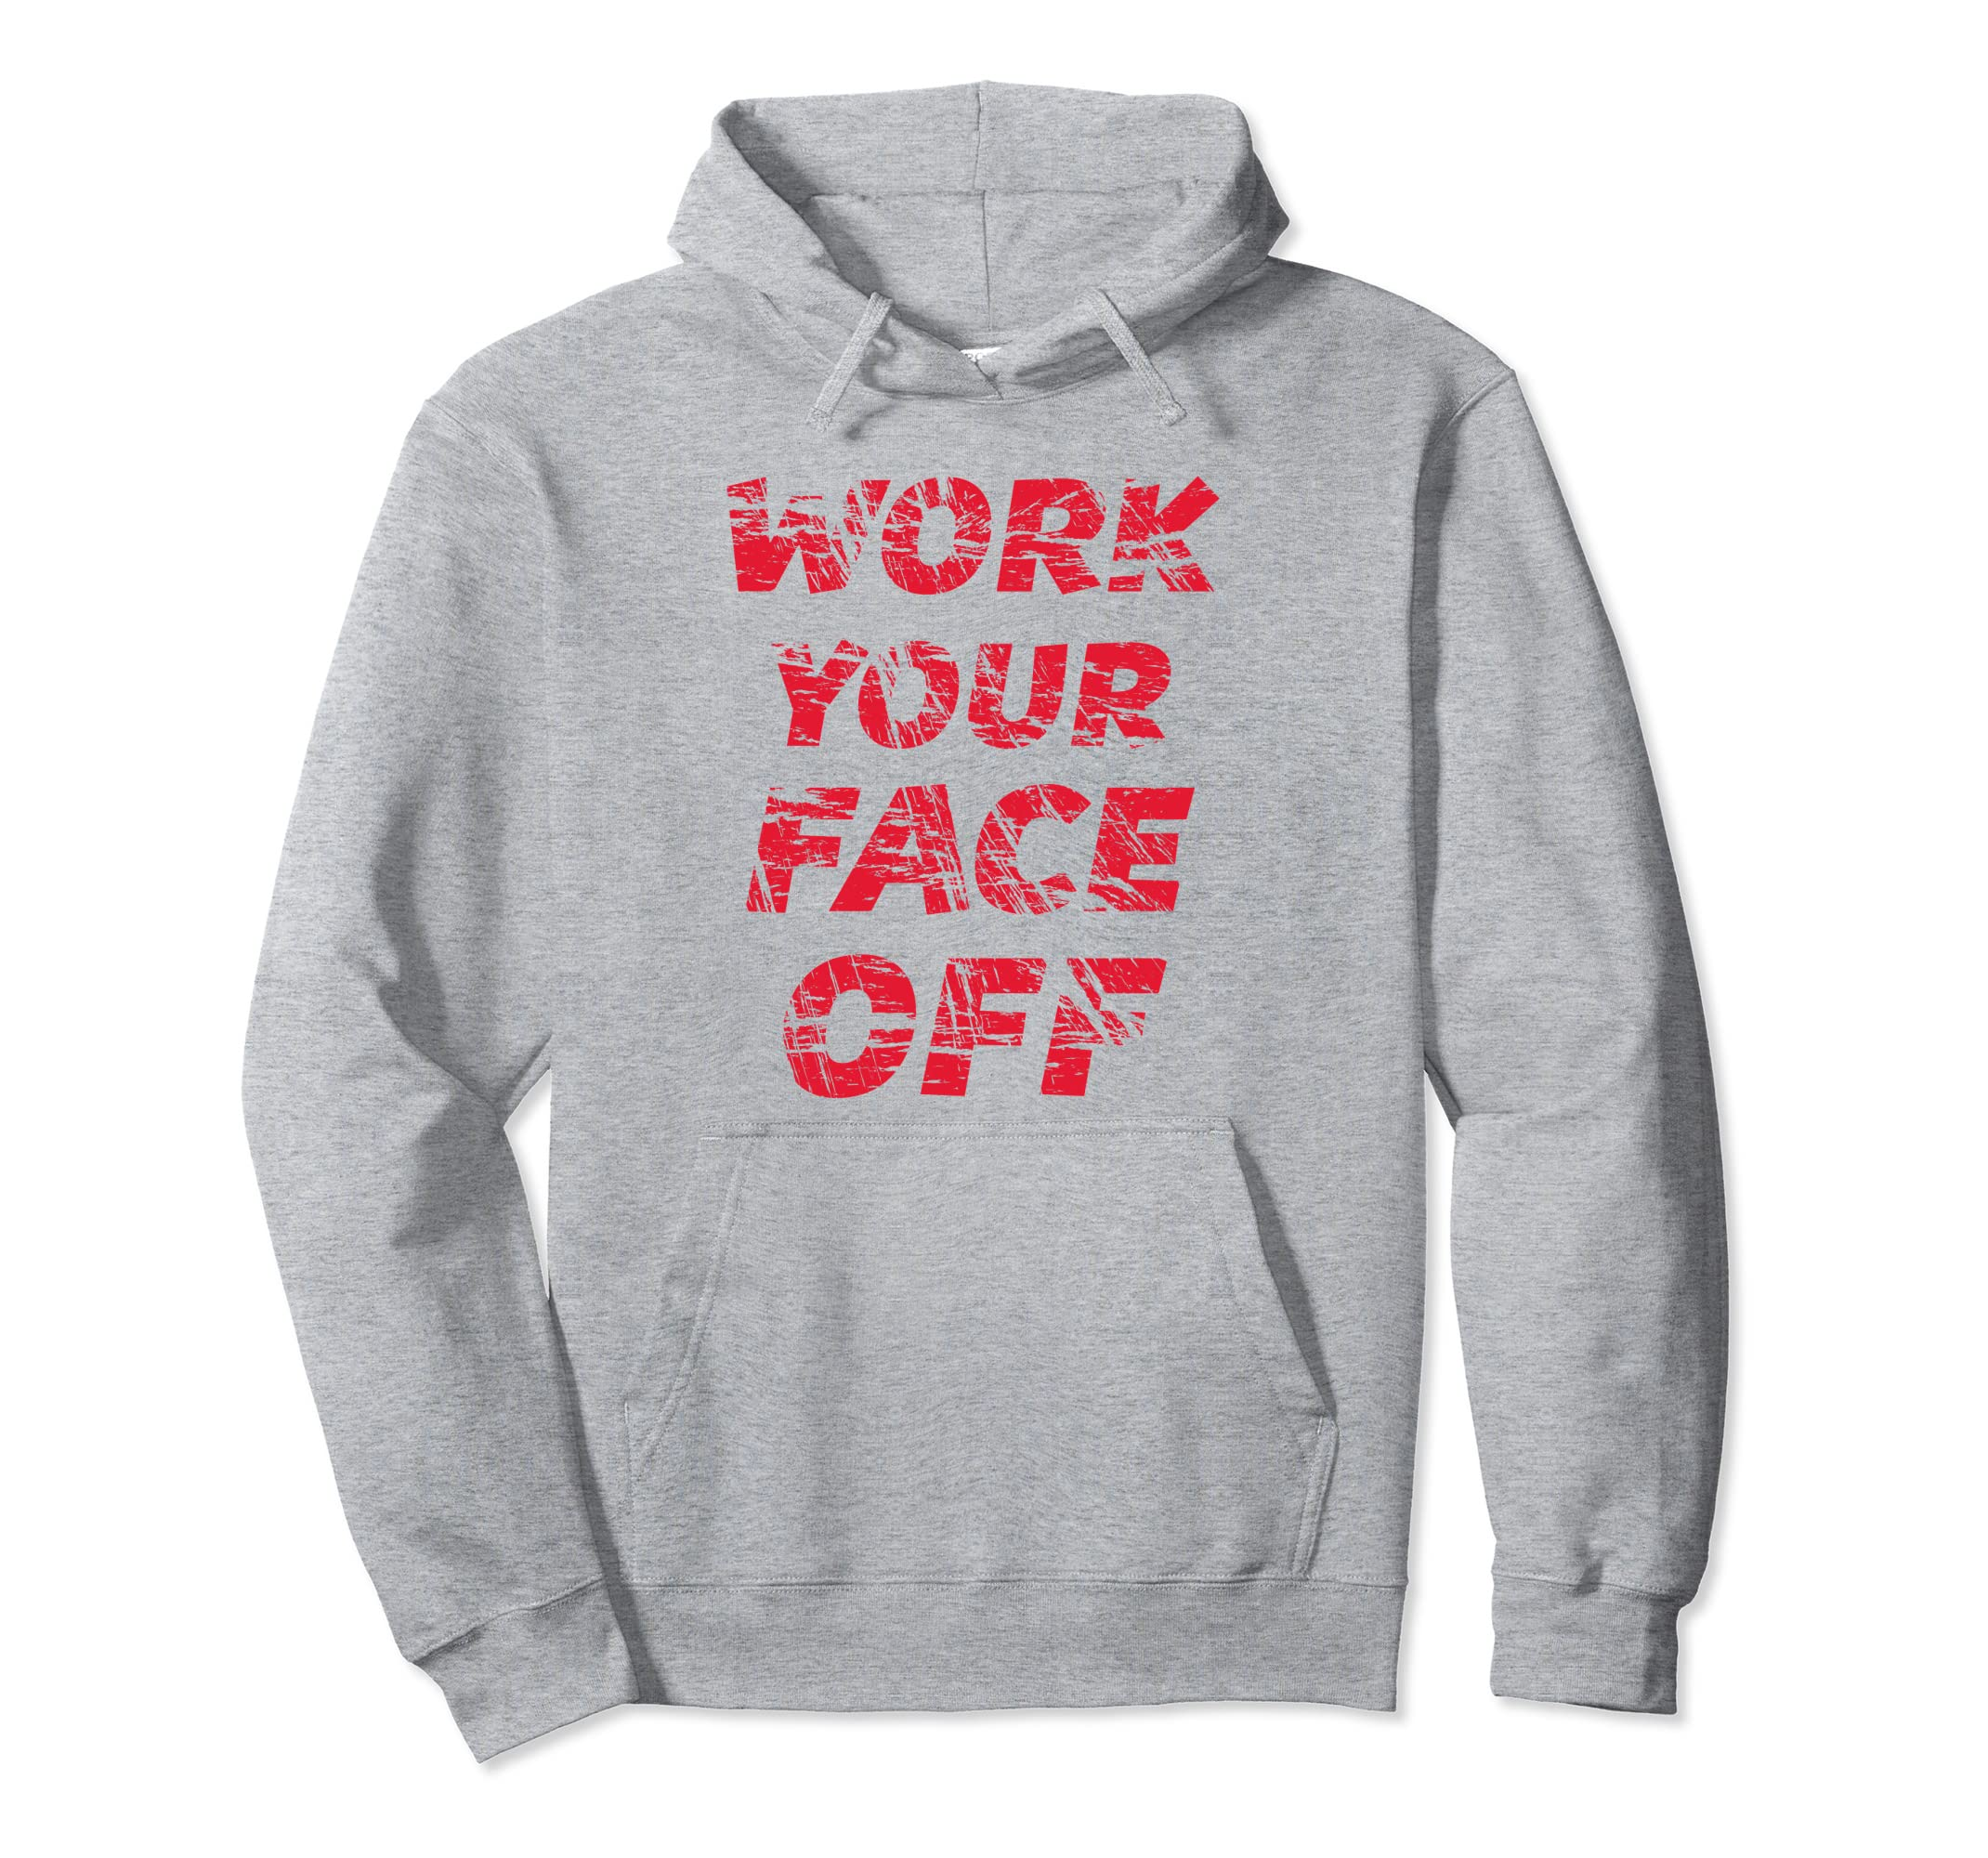 WORK YOUR FACE OFF - Hoodie | Hooded Sweatshirt-SFL